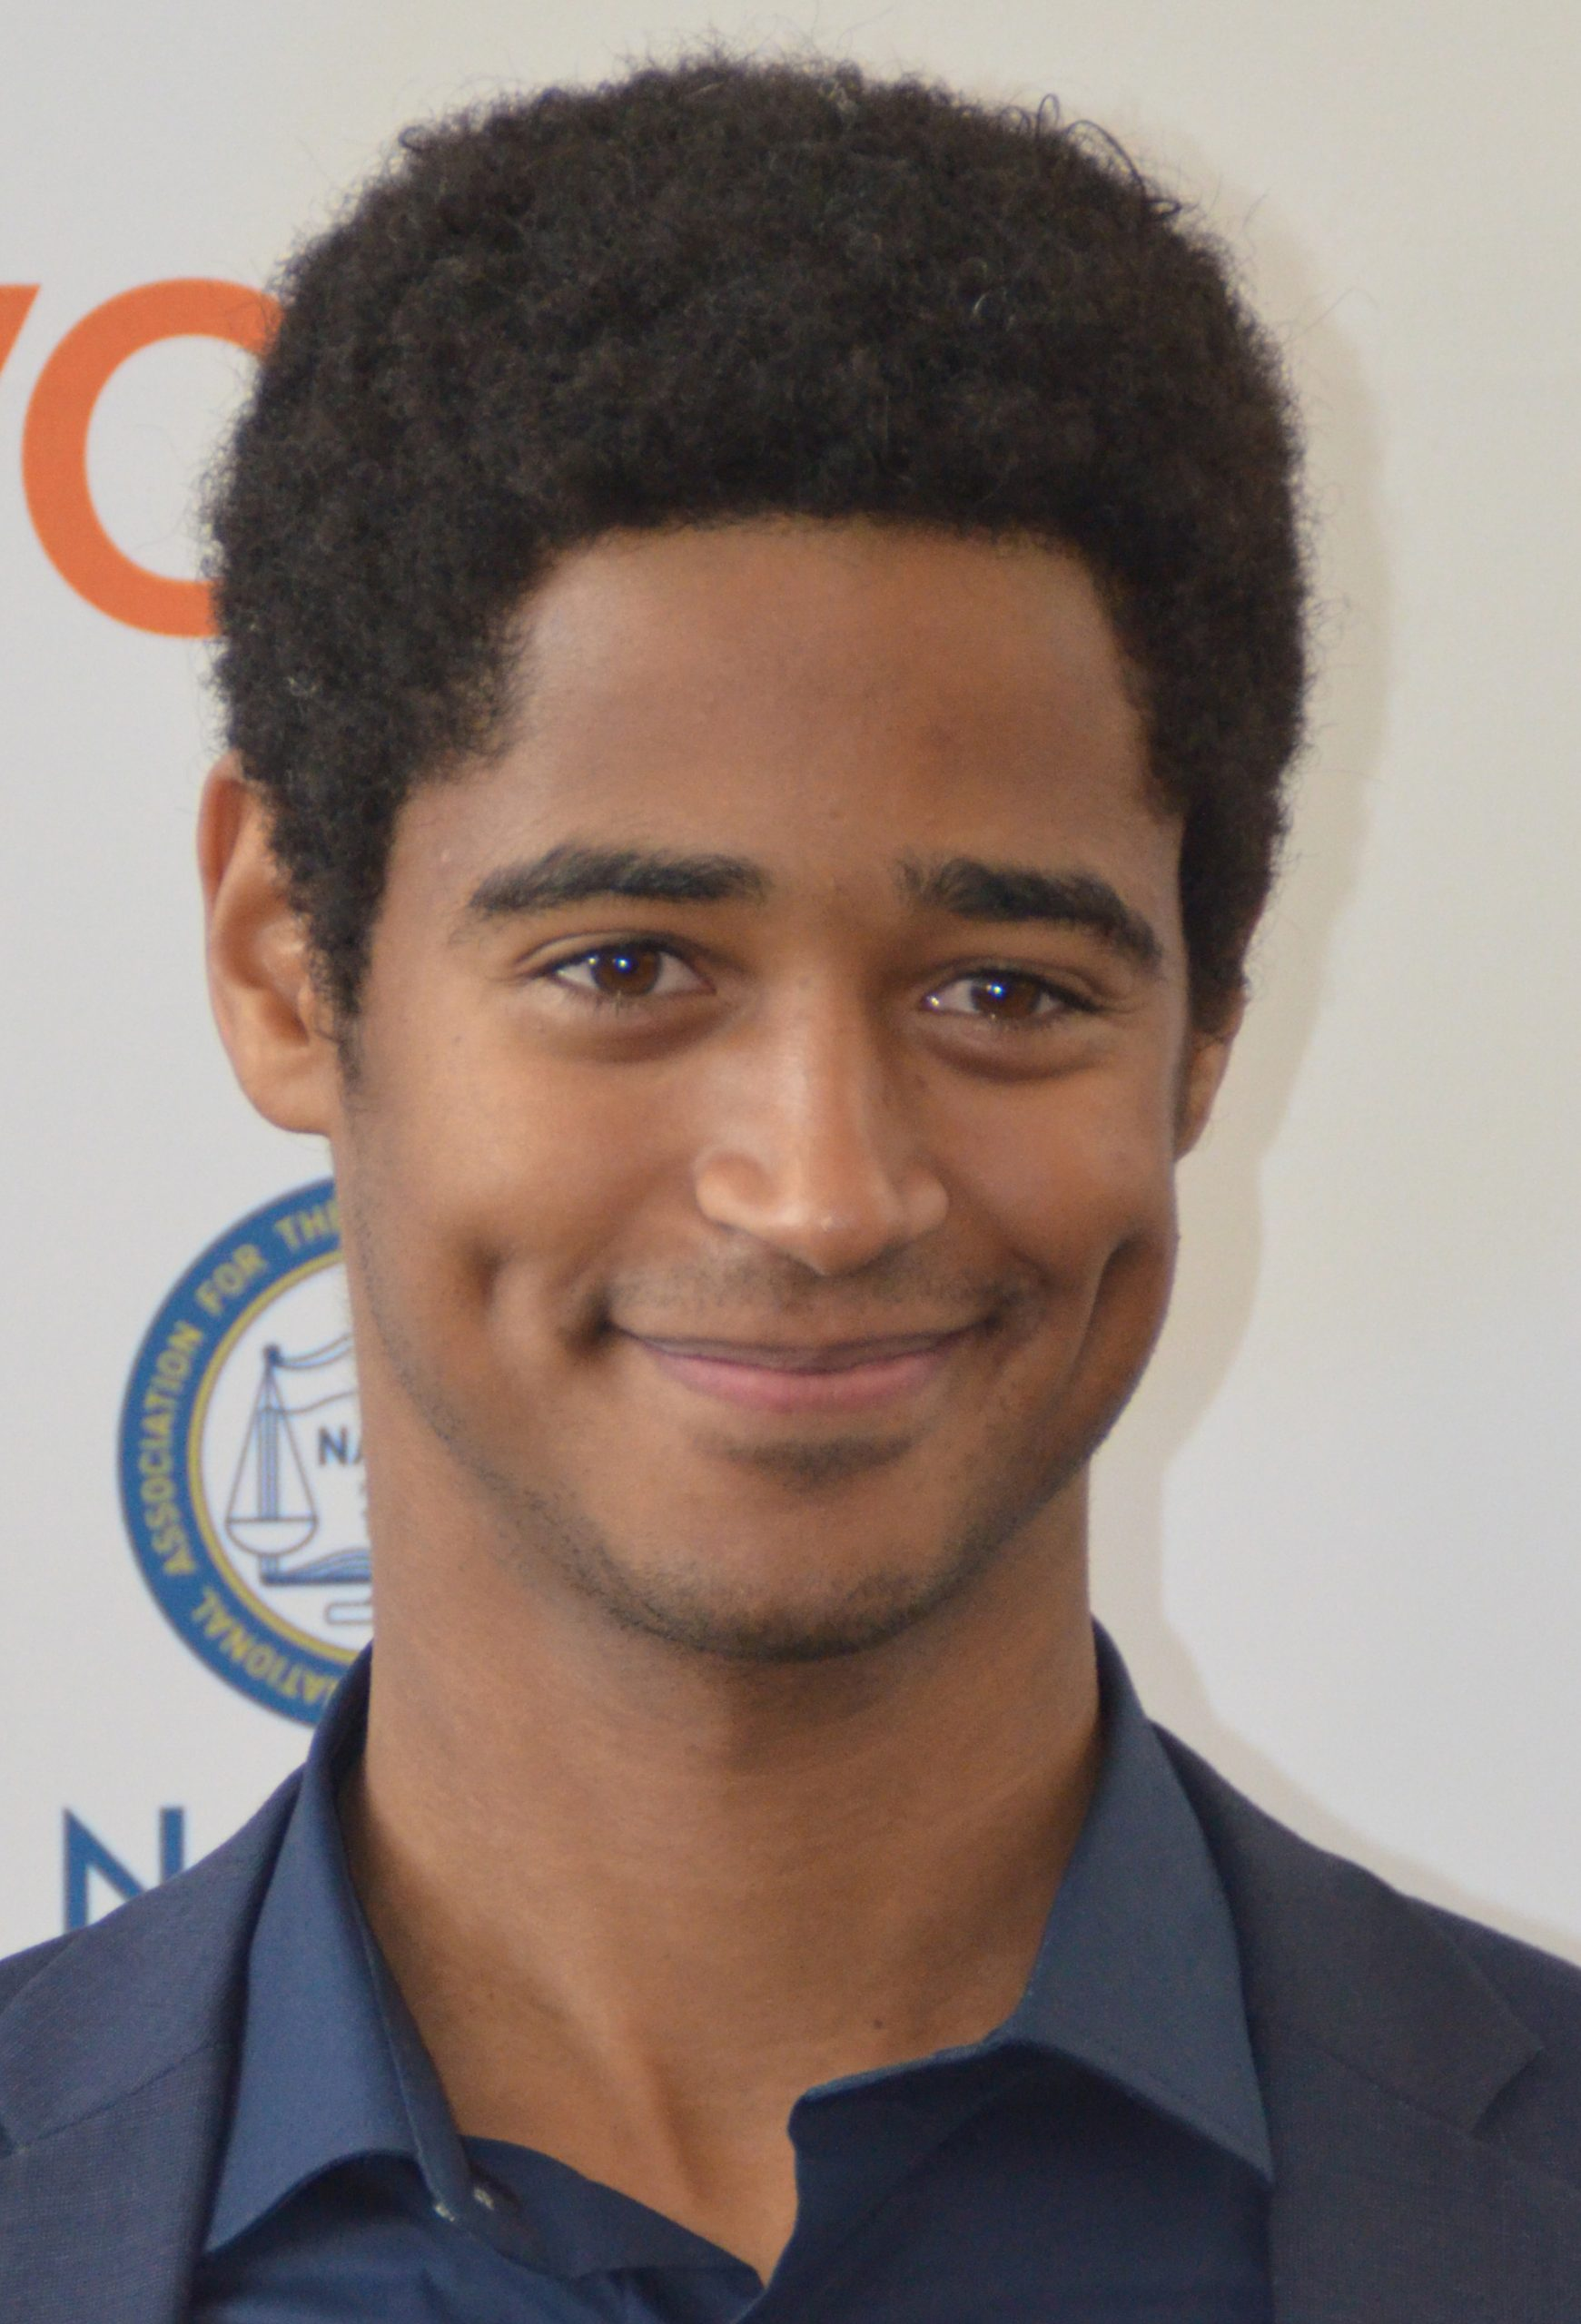 Alfred_Enoch_2014_NAACP_Image_Awards_(cropped)